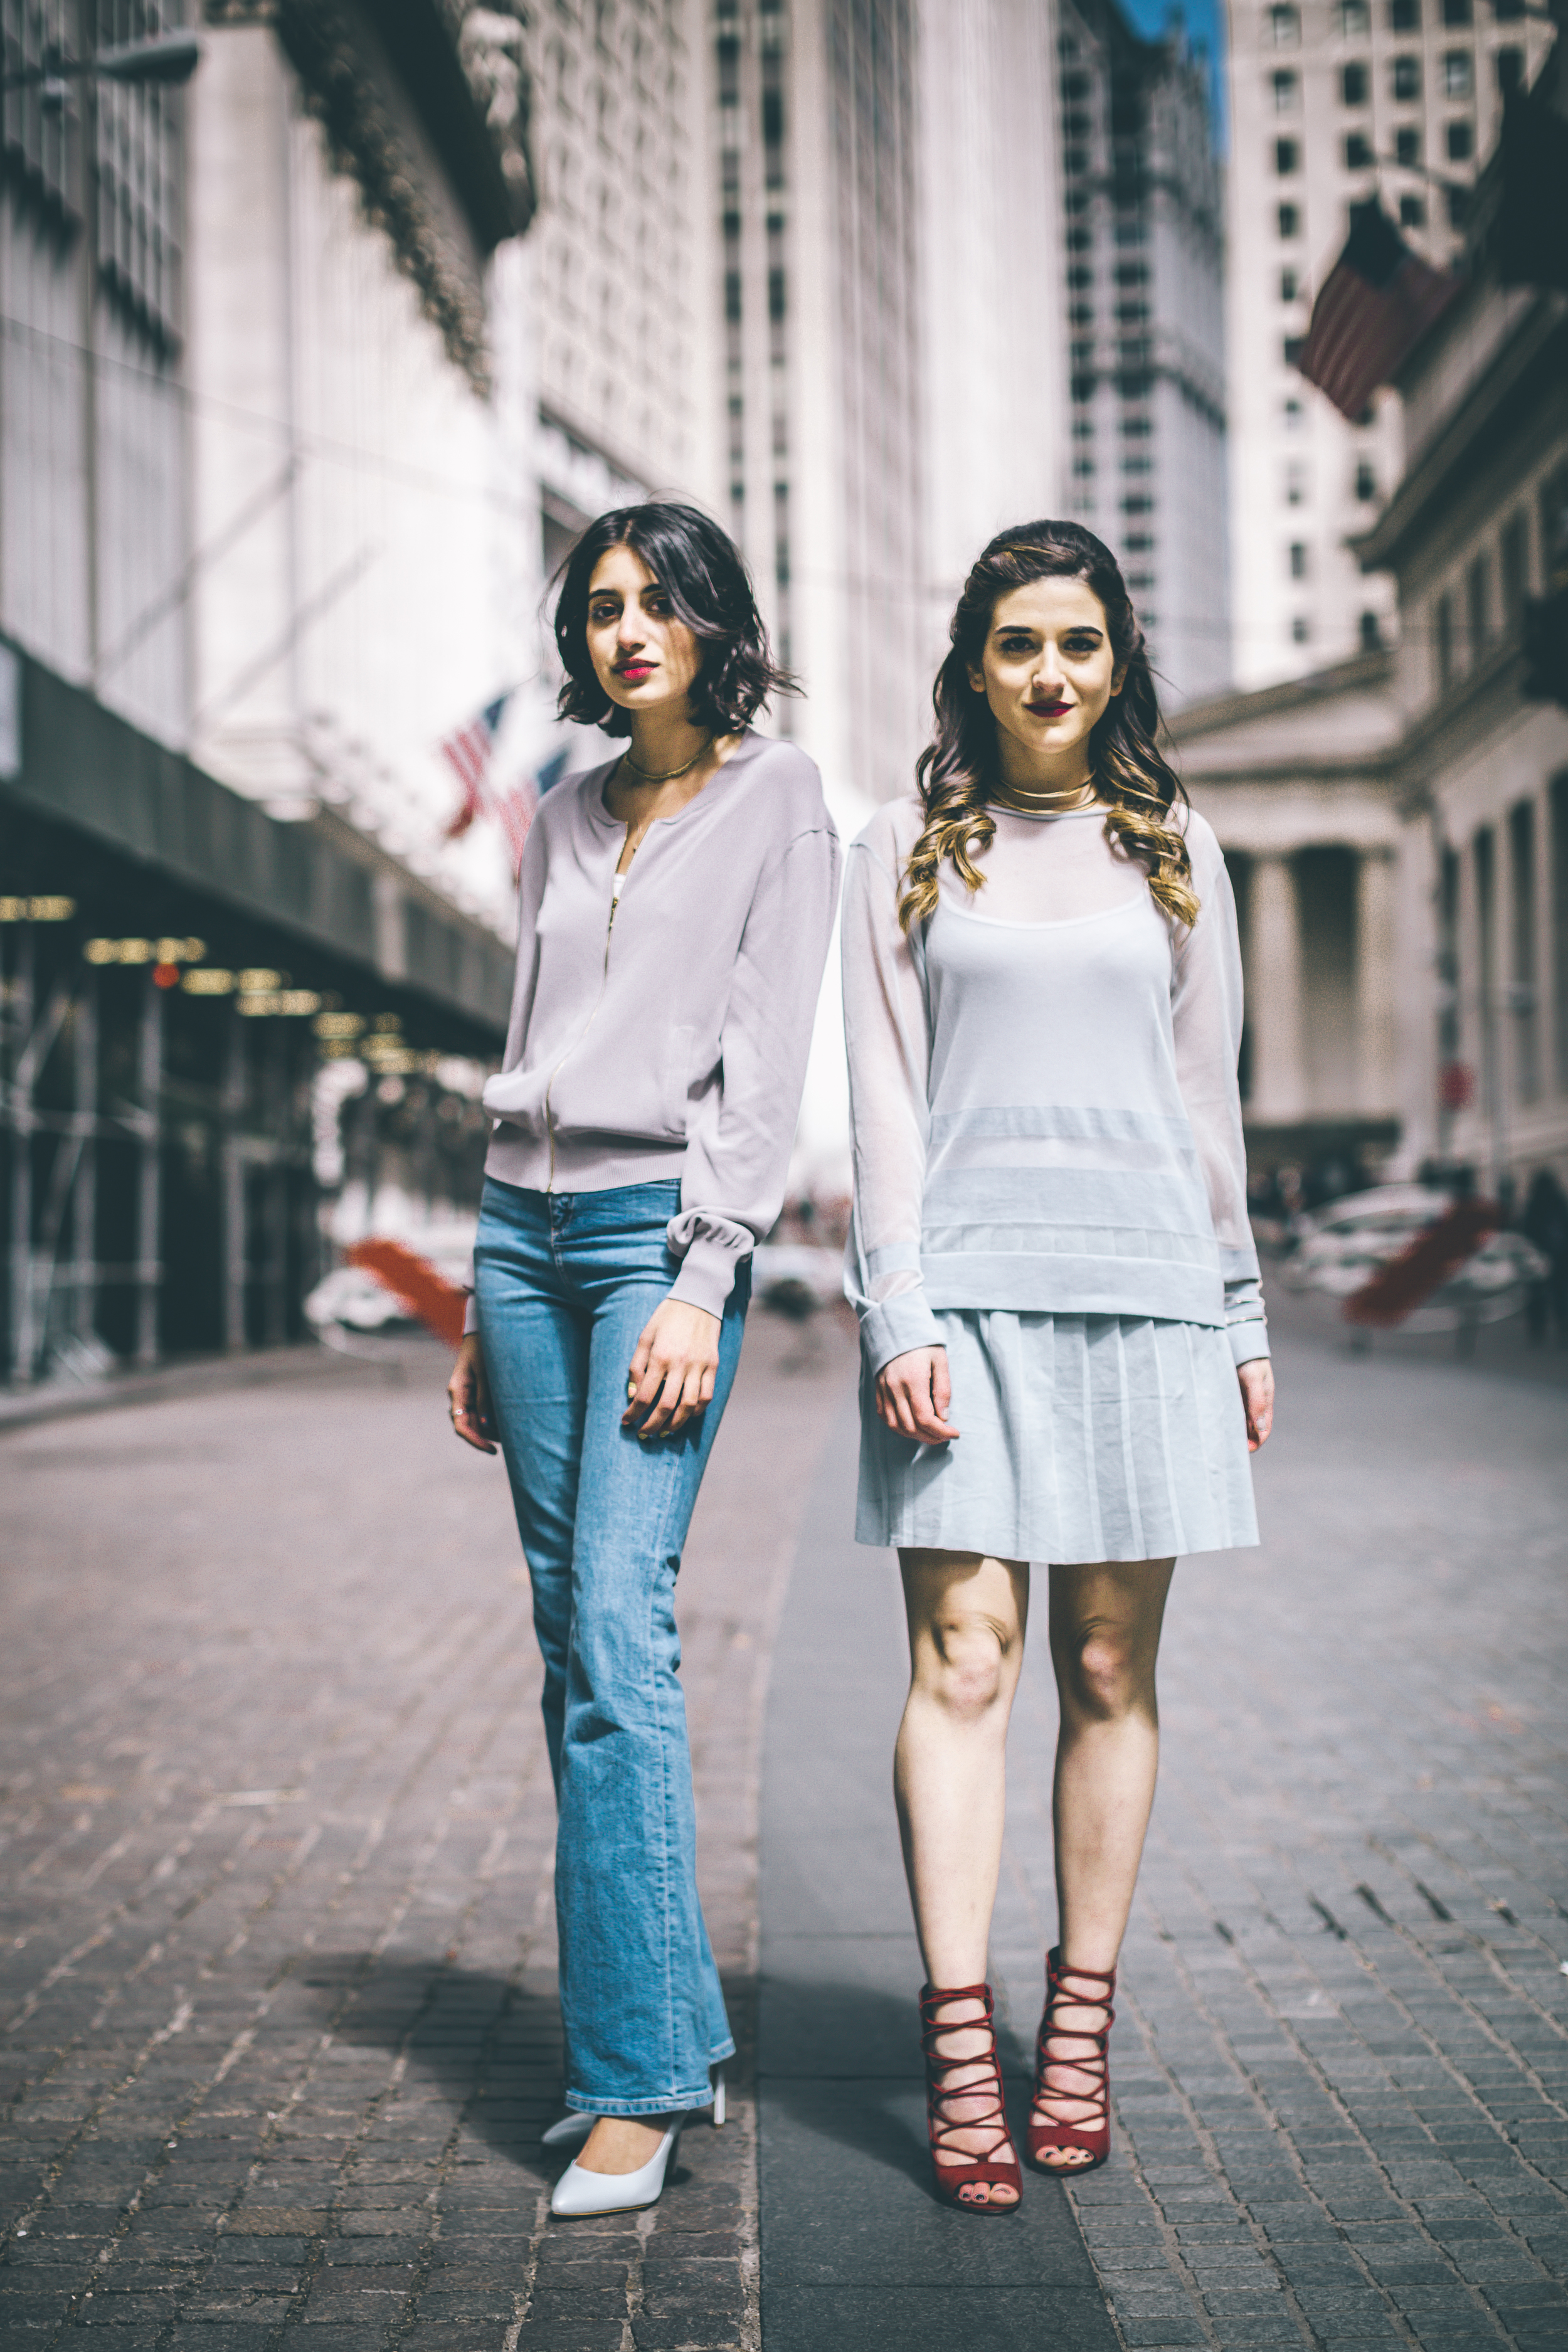 Louboutins & Love x Our Second Skin Photoshoot Collab Esther Santer NYC Street Style Fashion Blogger Anaa Saber Girls Women Matthew Pastula Photography Models Gold Jewelry Collar Necklace Monochrome Blue Skirt Sheer Top Lace-Up Heels French Connection.jpg